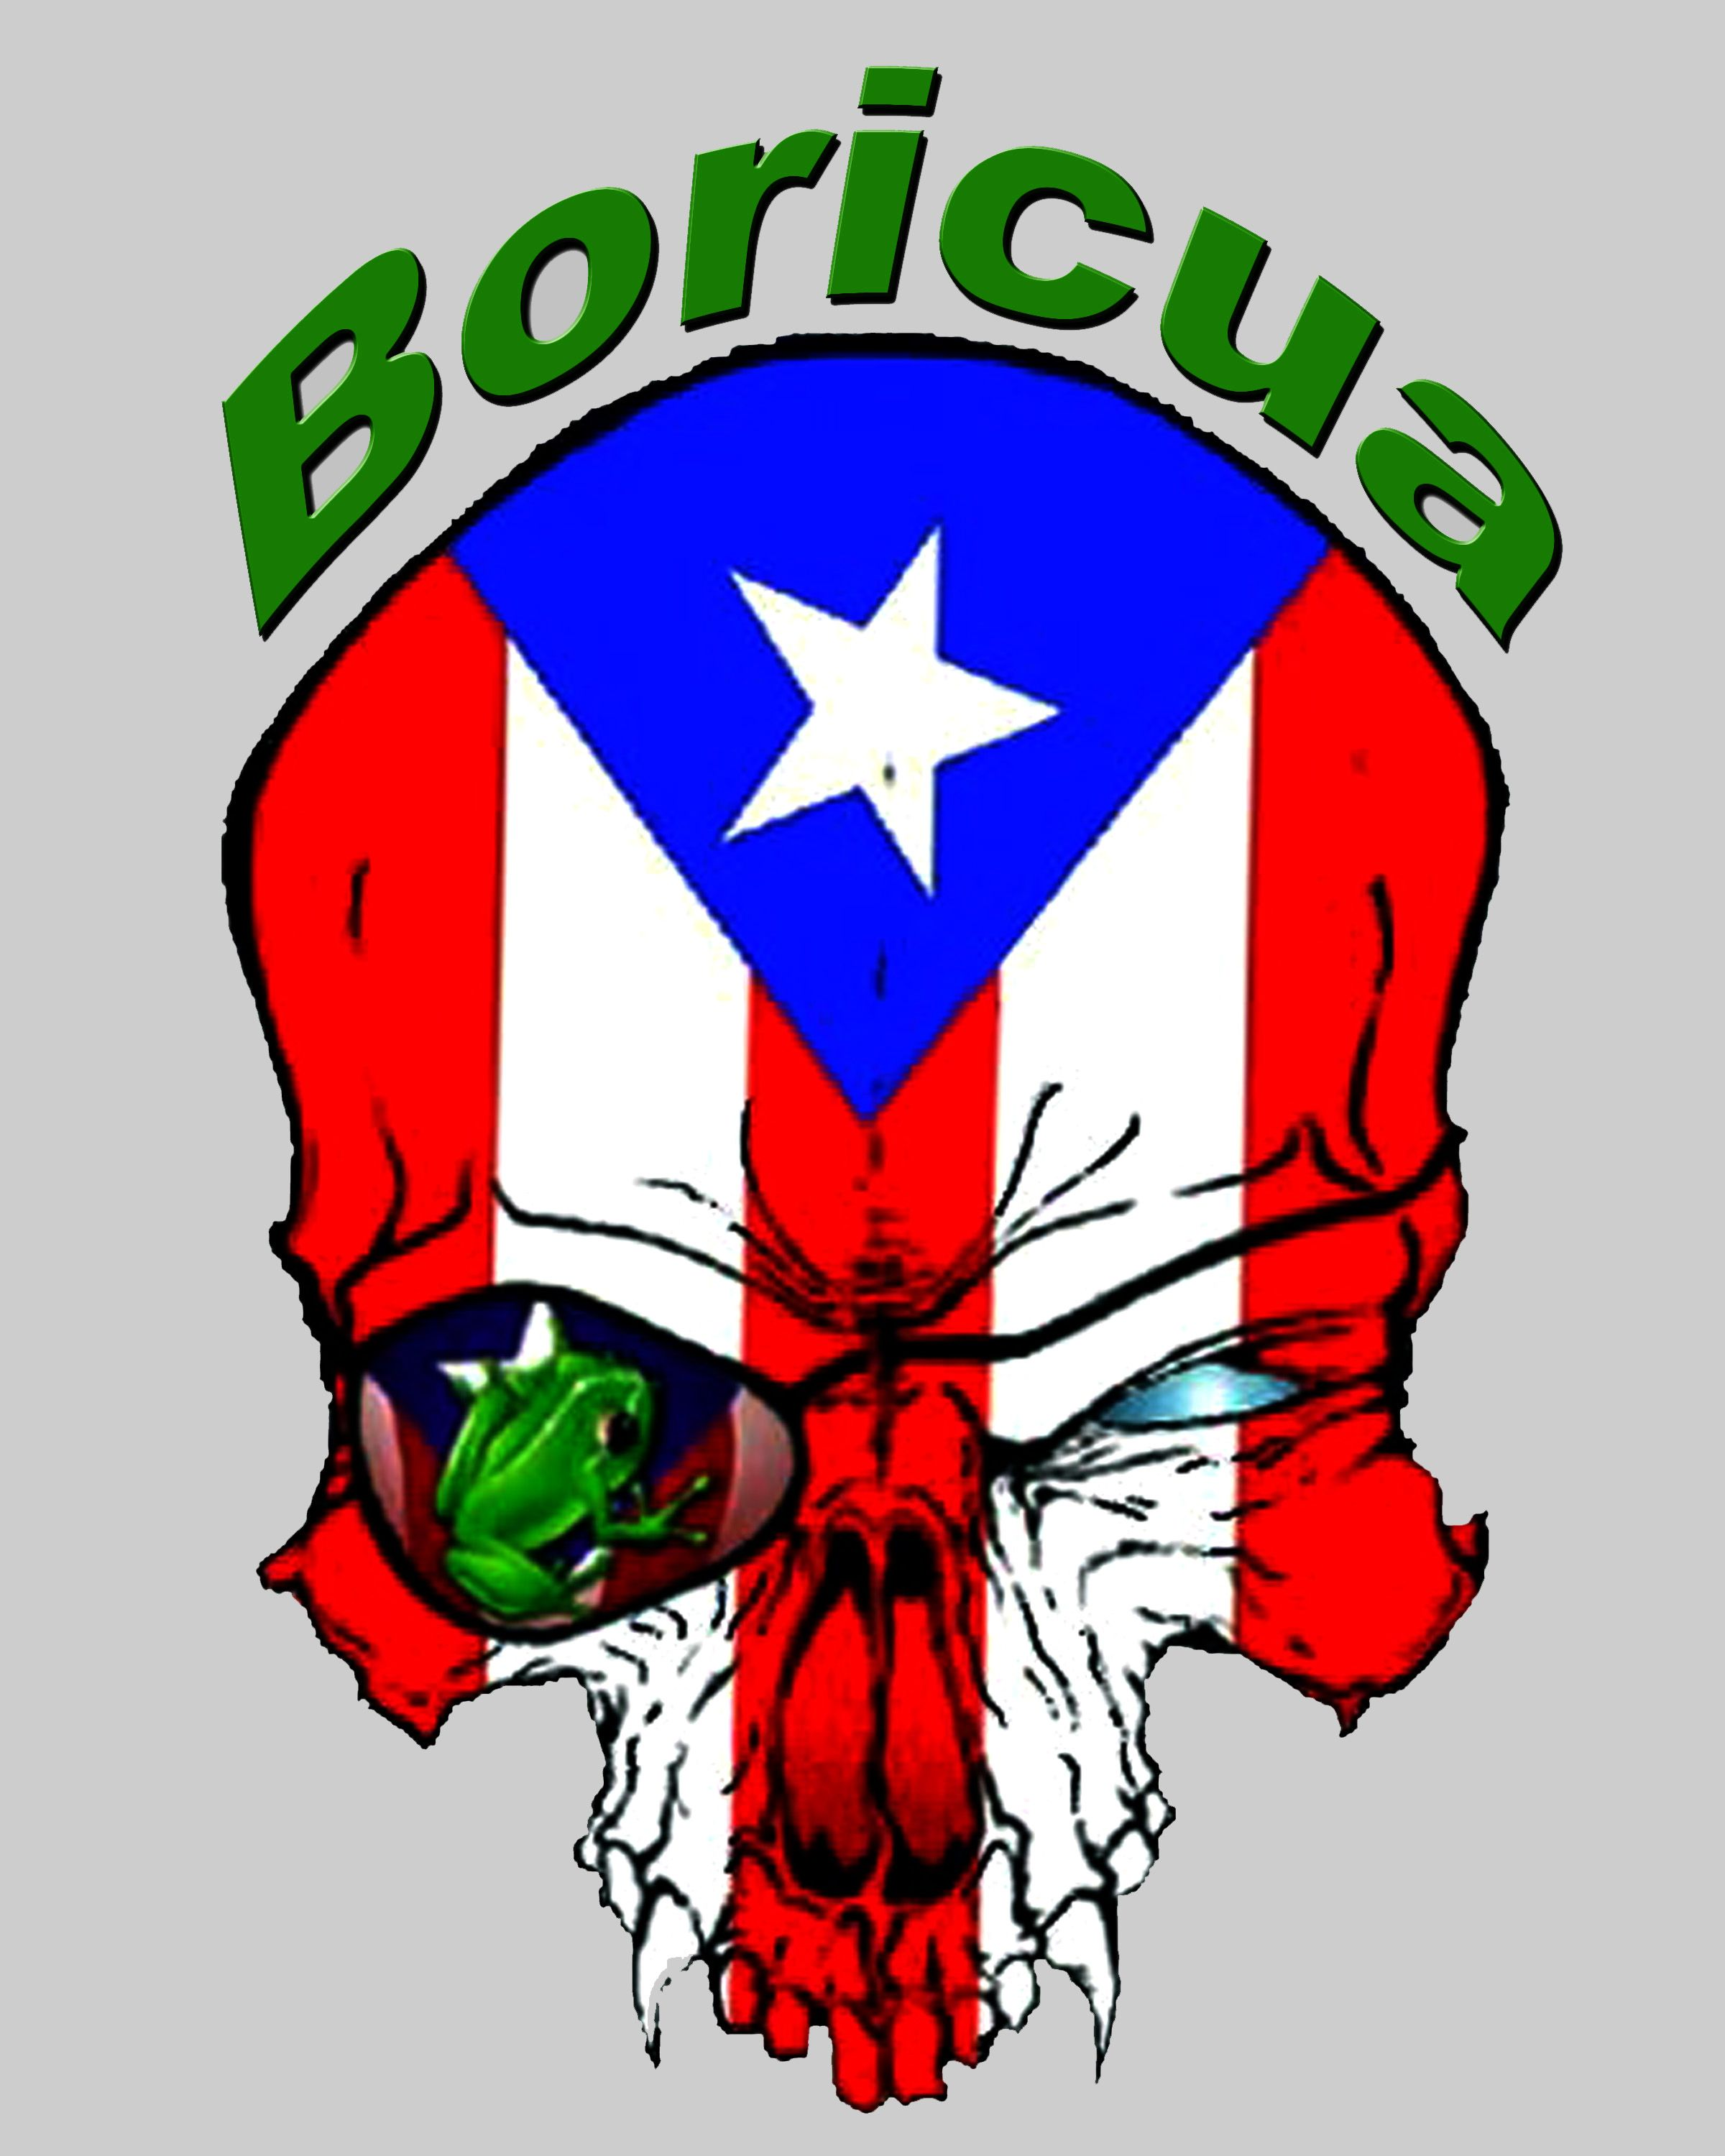 Puerto Rican Hip Hop Toons - Google Search